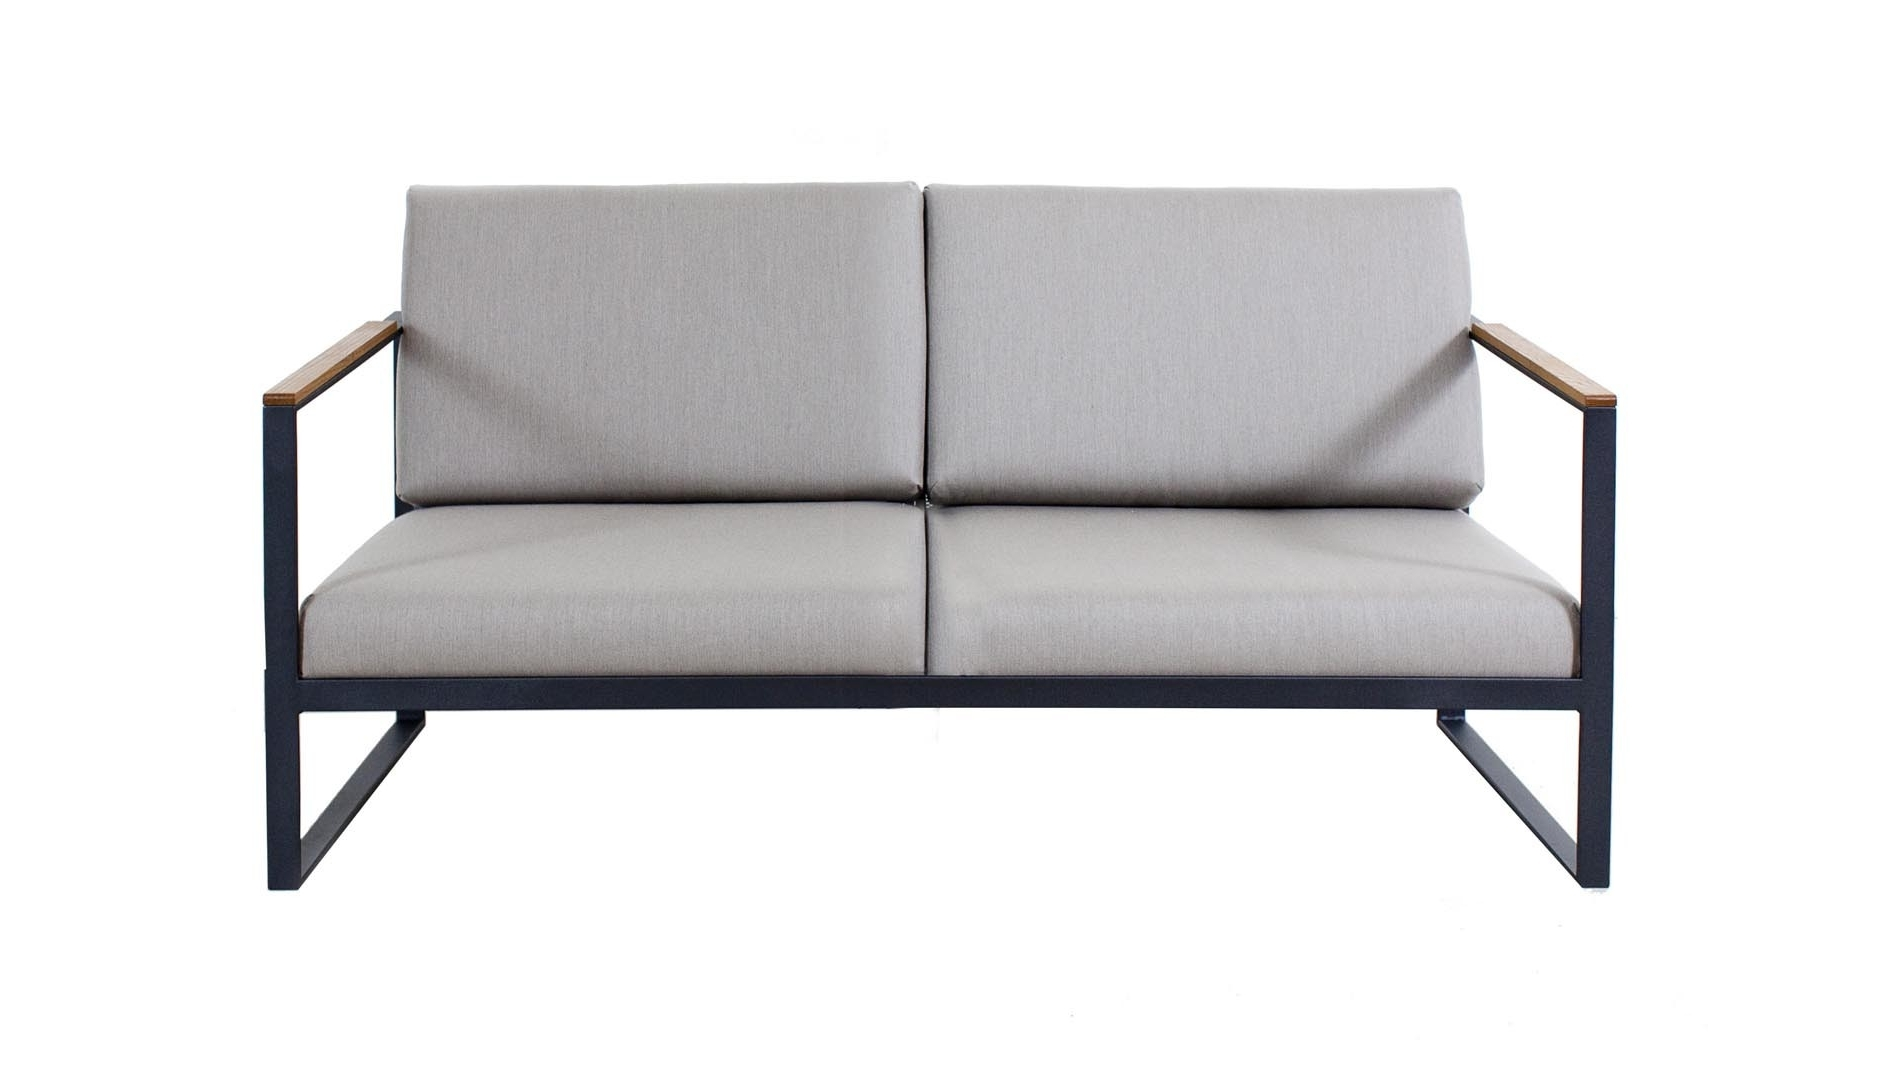 Image Gallery Of Two Seater Sofas View